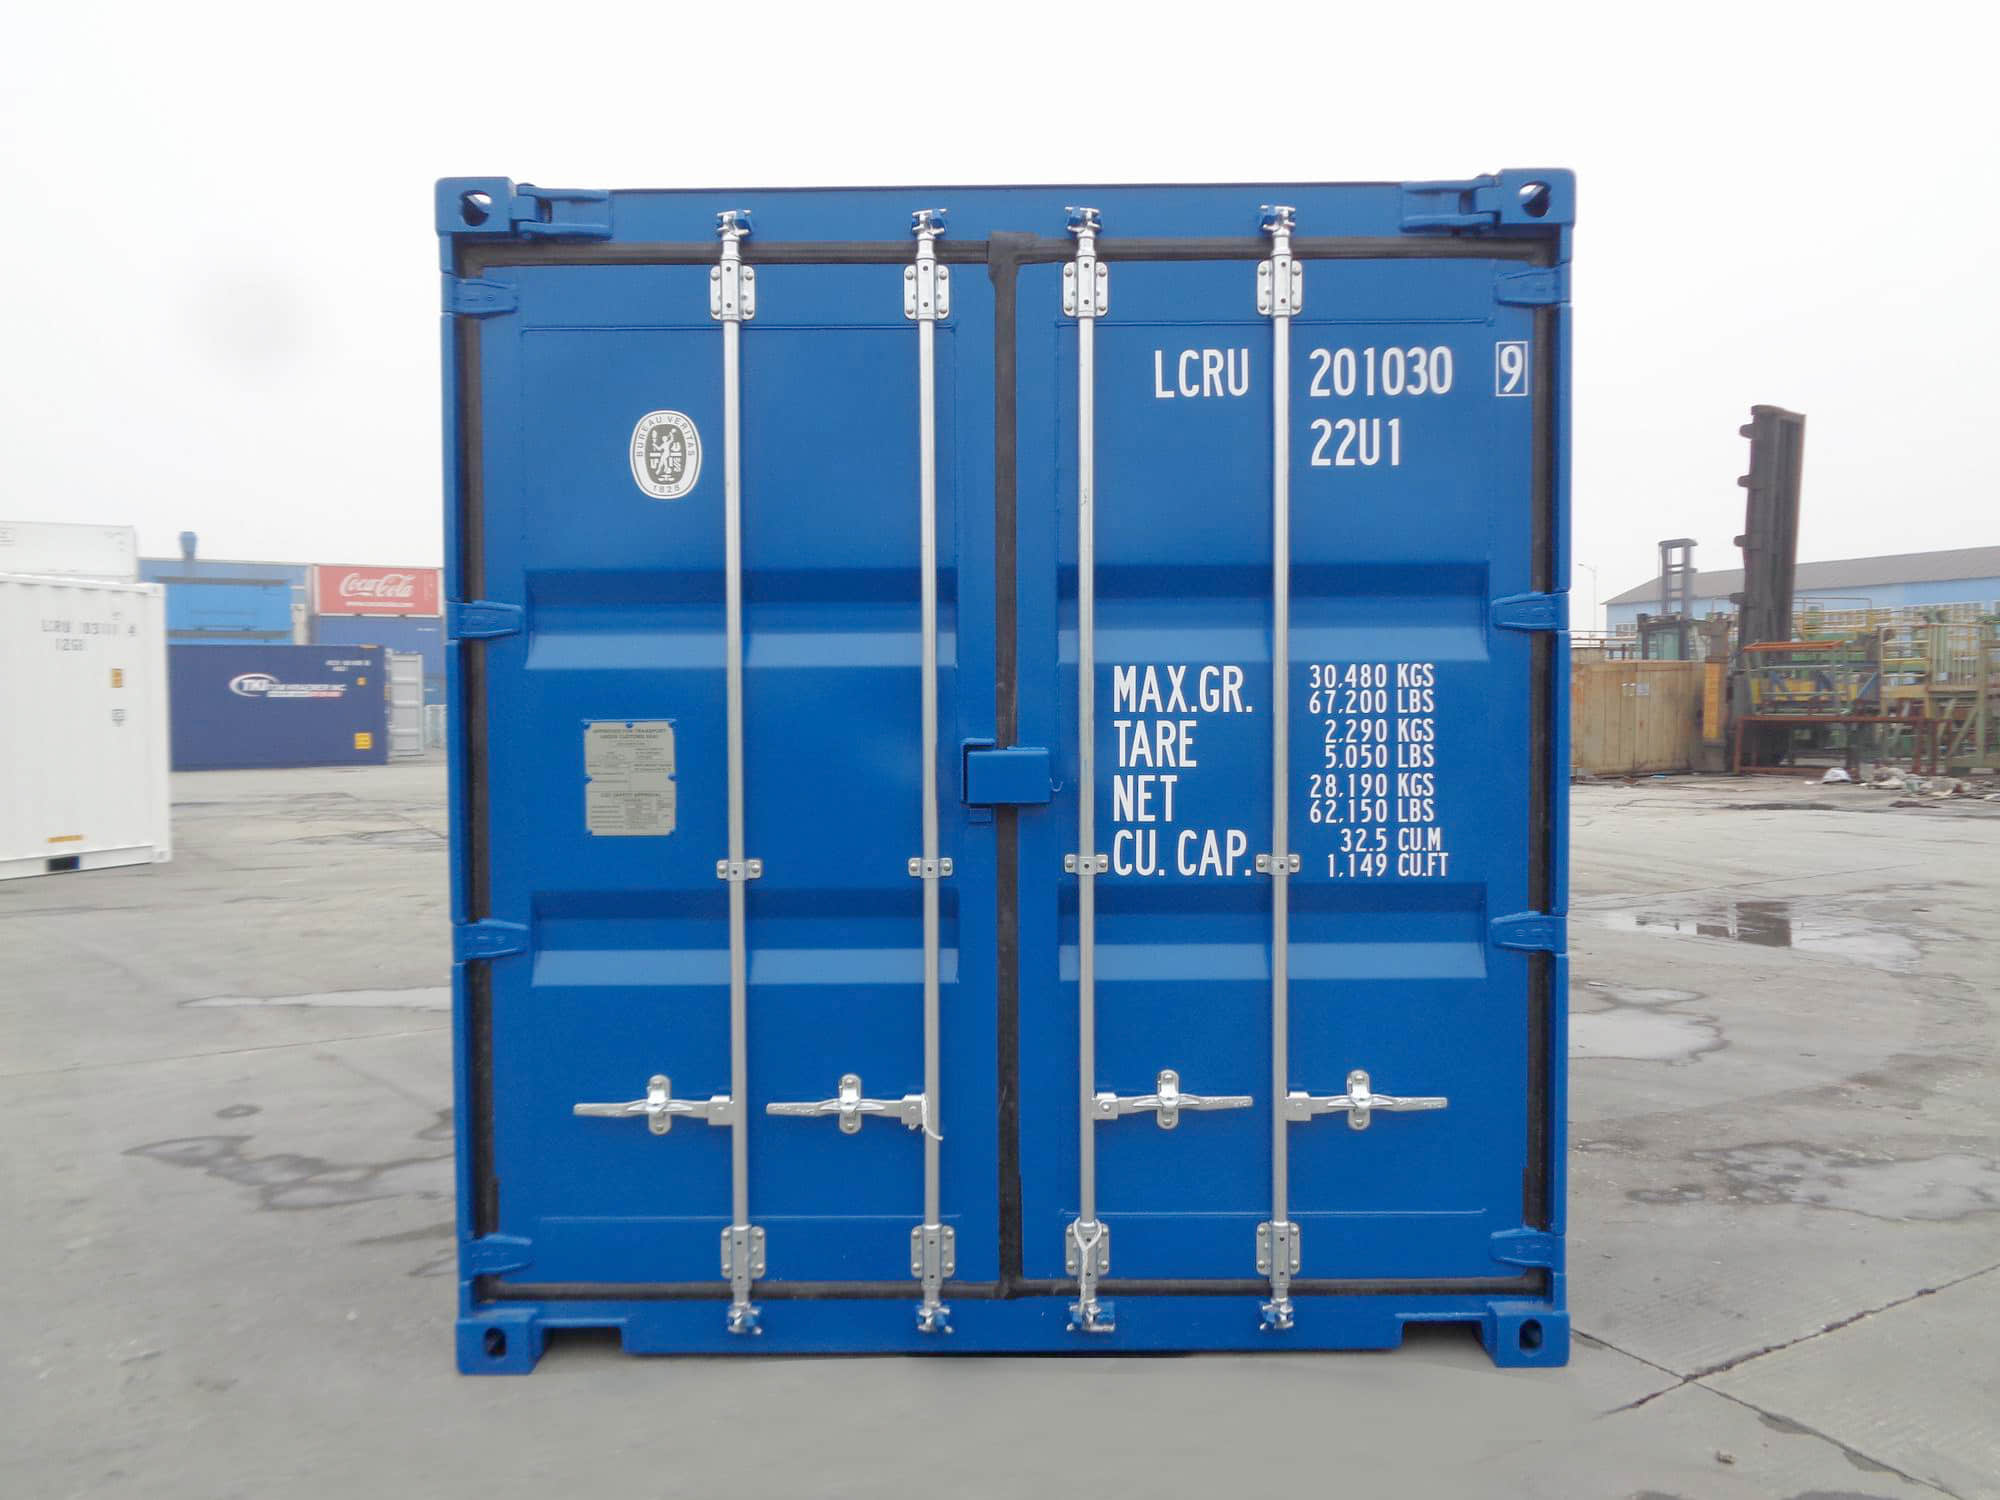 Ordinary container